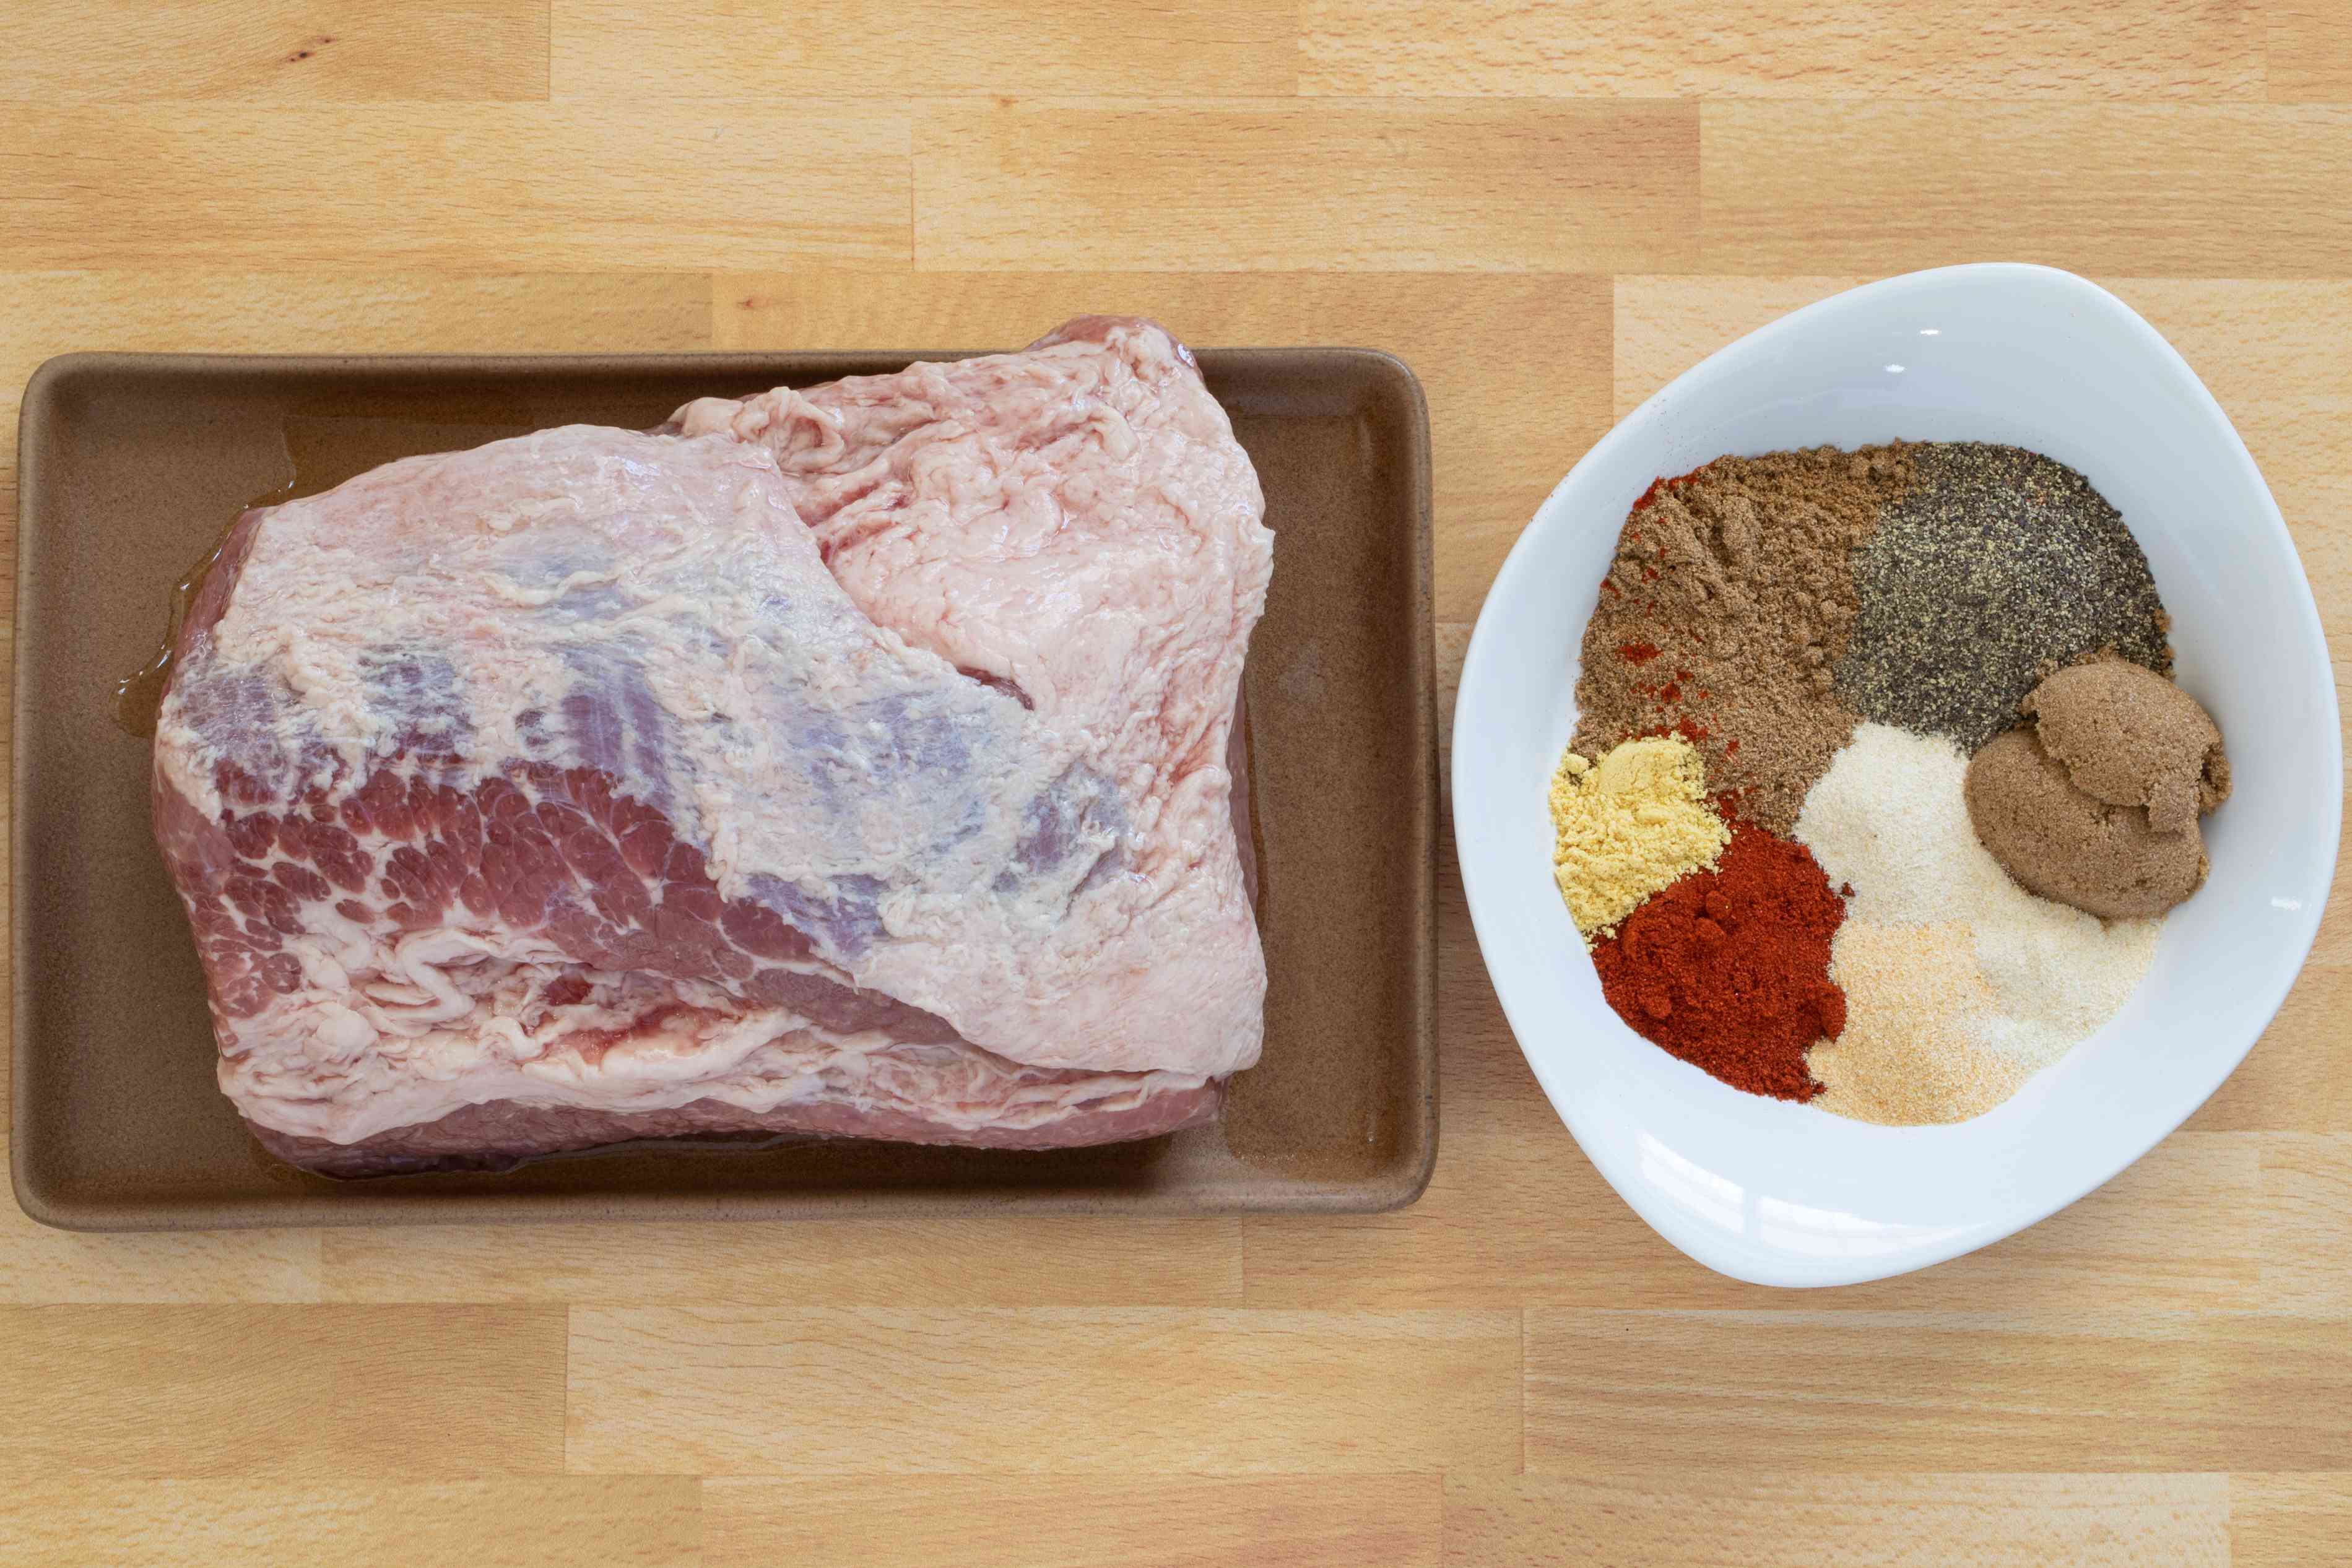 ingredients for homemade instant pot pastrami